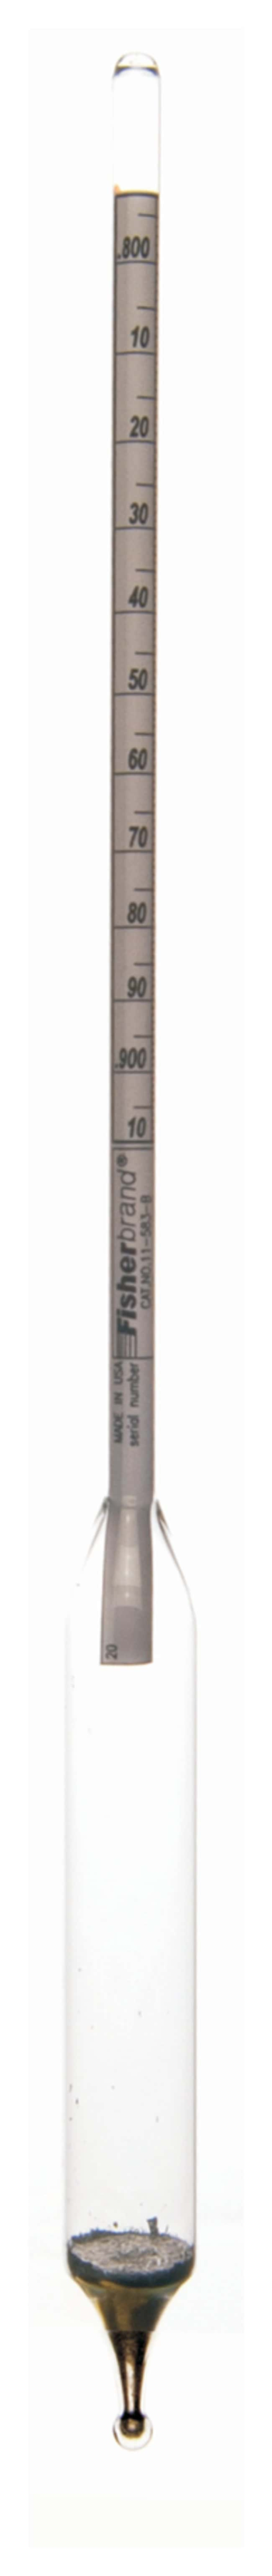 Fisherbrand Replacement Hydrometers for FBA11582 Precision Specific Gravity